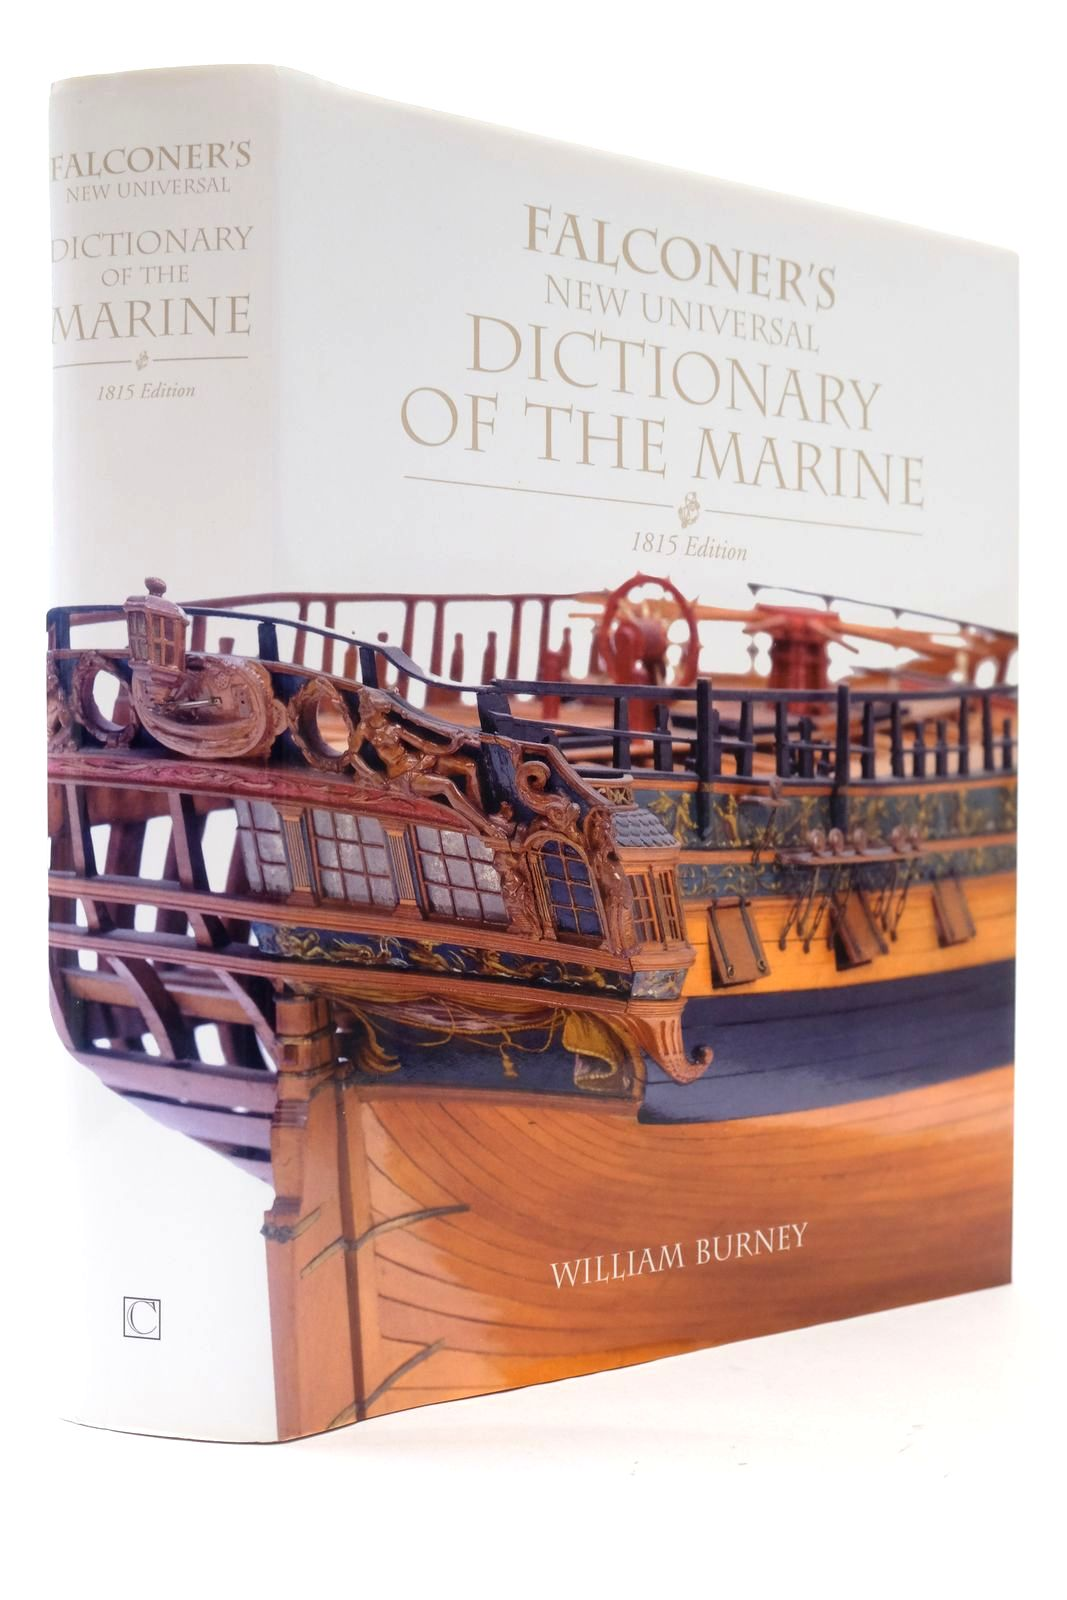 Photo of FALCONER'S NEW UNIVERSAL DICTIONARY OF THE MARINE written by Falconer, William Burney, William published by Chatham Publishing (STOCK CODE: 2132926)  for sale by Stella & Rose's Books